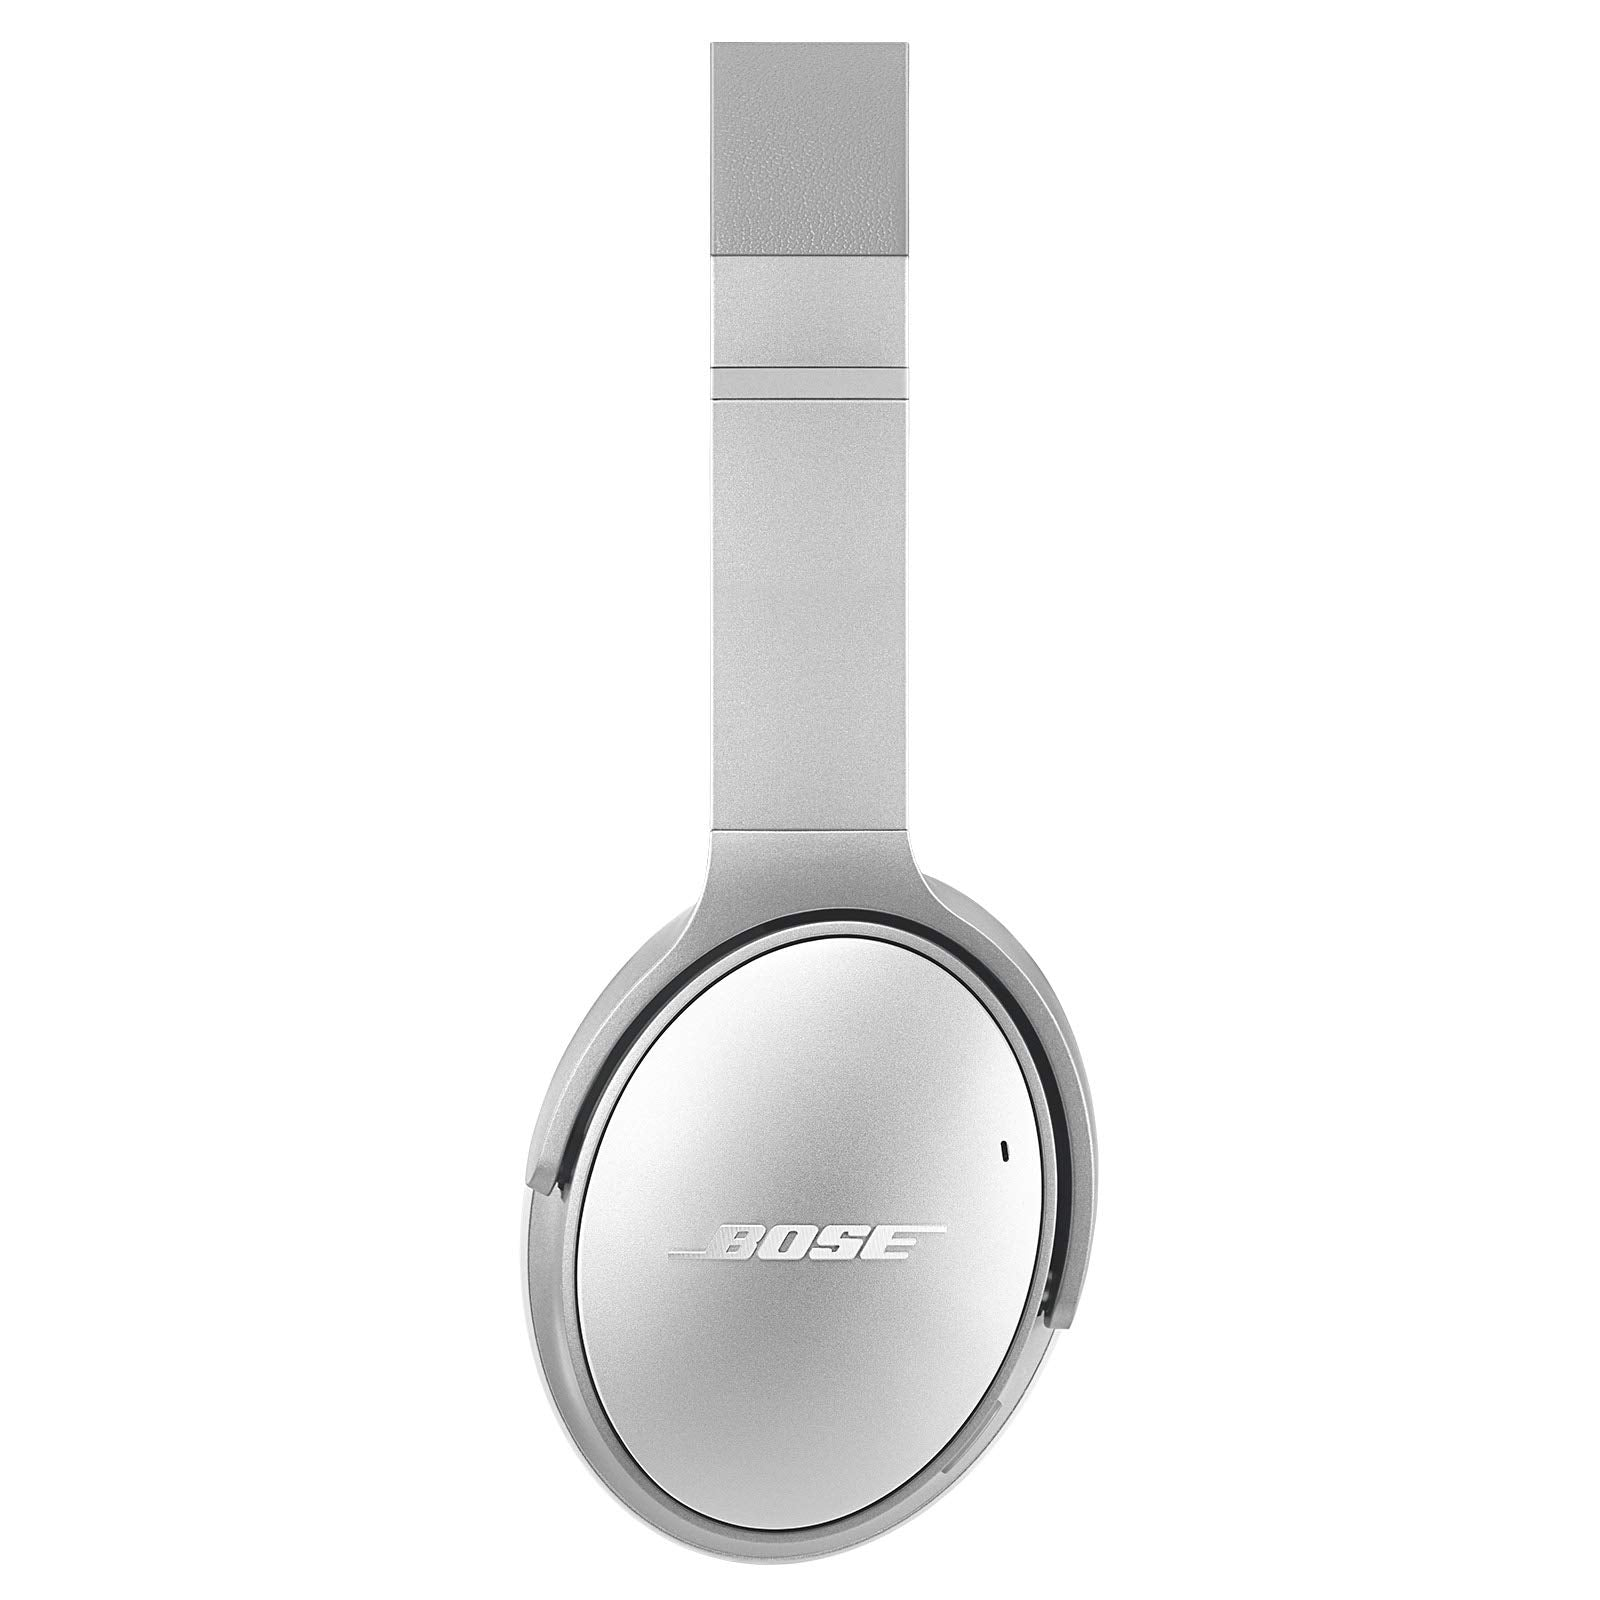 Bose QuietComfort 35 II Wireless Bluetooth Headphones, Noise-Cancelling, with Alexa voice control